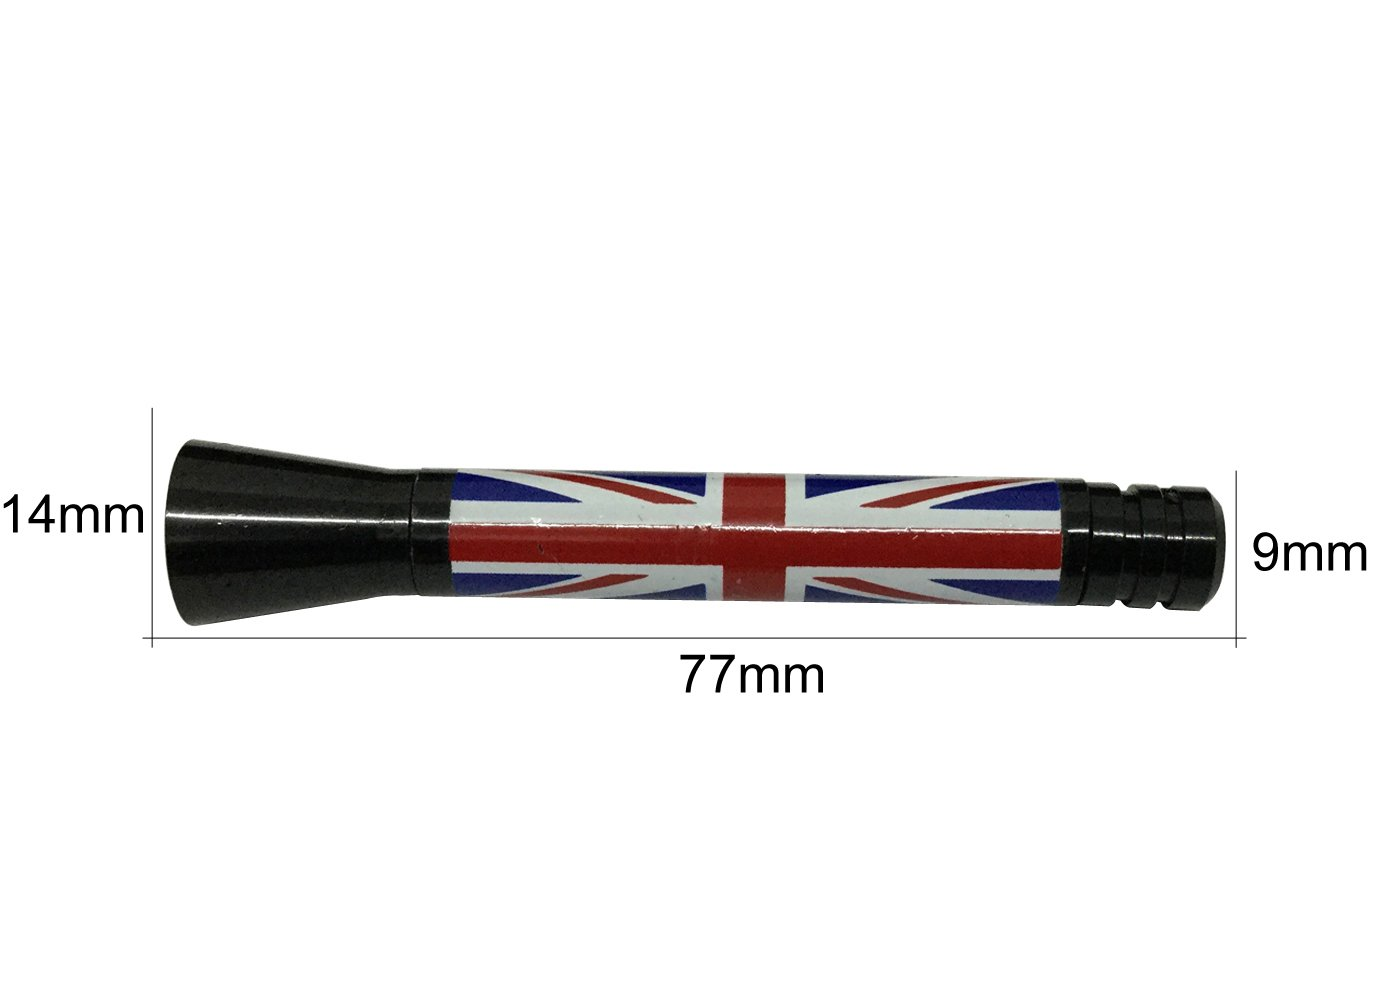 Panpage Combo Set Roof Top Radio Stubby Union Jack Flag and Black White Union Jack Flag Aluminum Screw Base Alloy Car Stylish Antenna 14mm x 77mm x 9mm For Mini Cooper Car Auto External Accessories